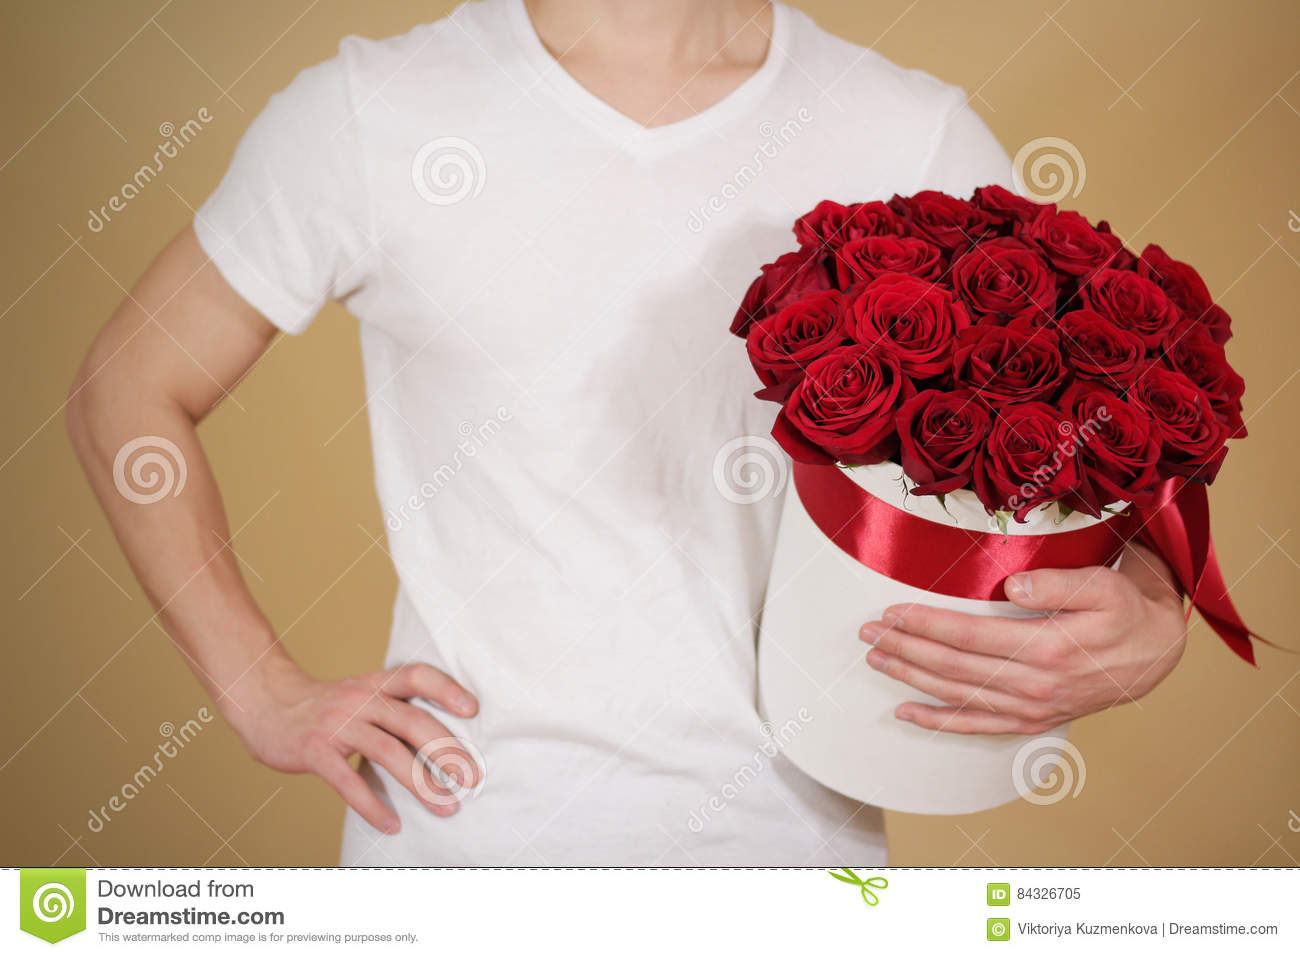 Man in white t shirt holding in hand rich gift bouquet of 21 red